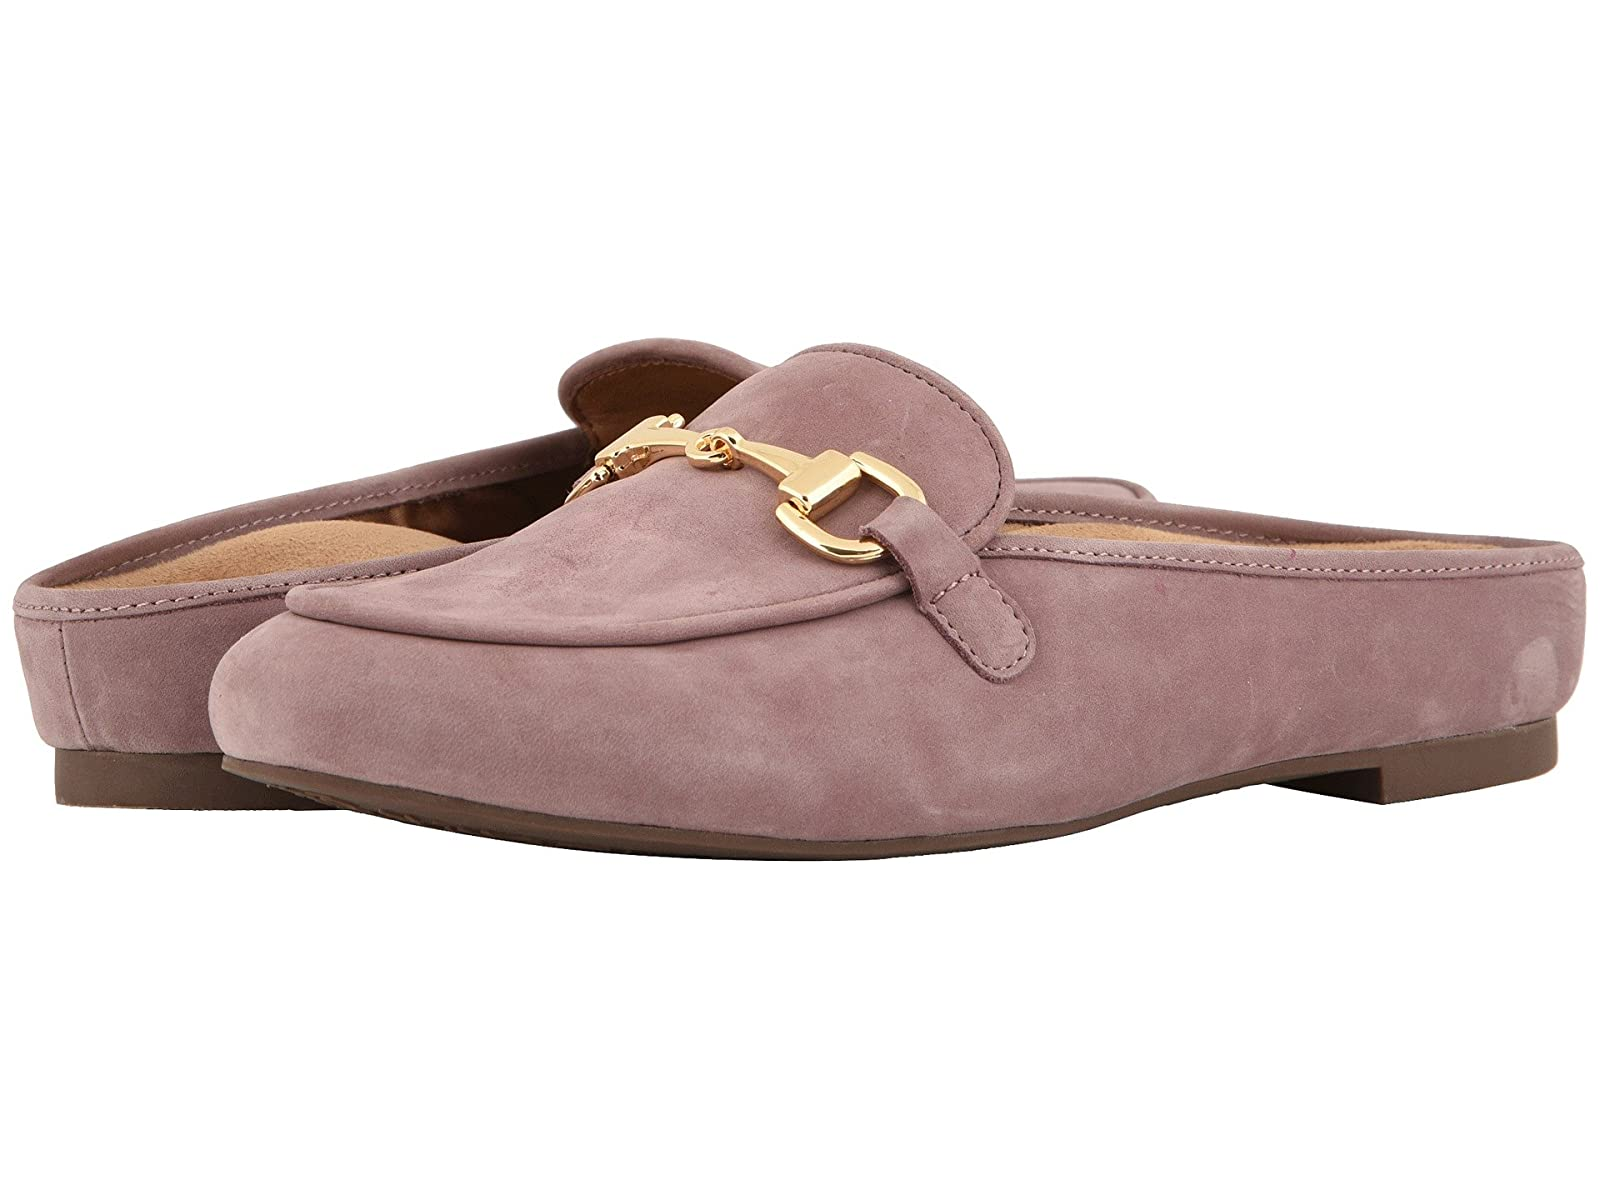 VIONIC AdelineAtmospheric grades have affordable shoes